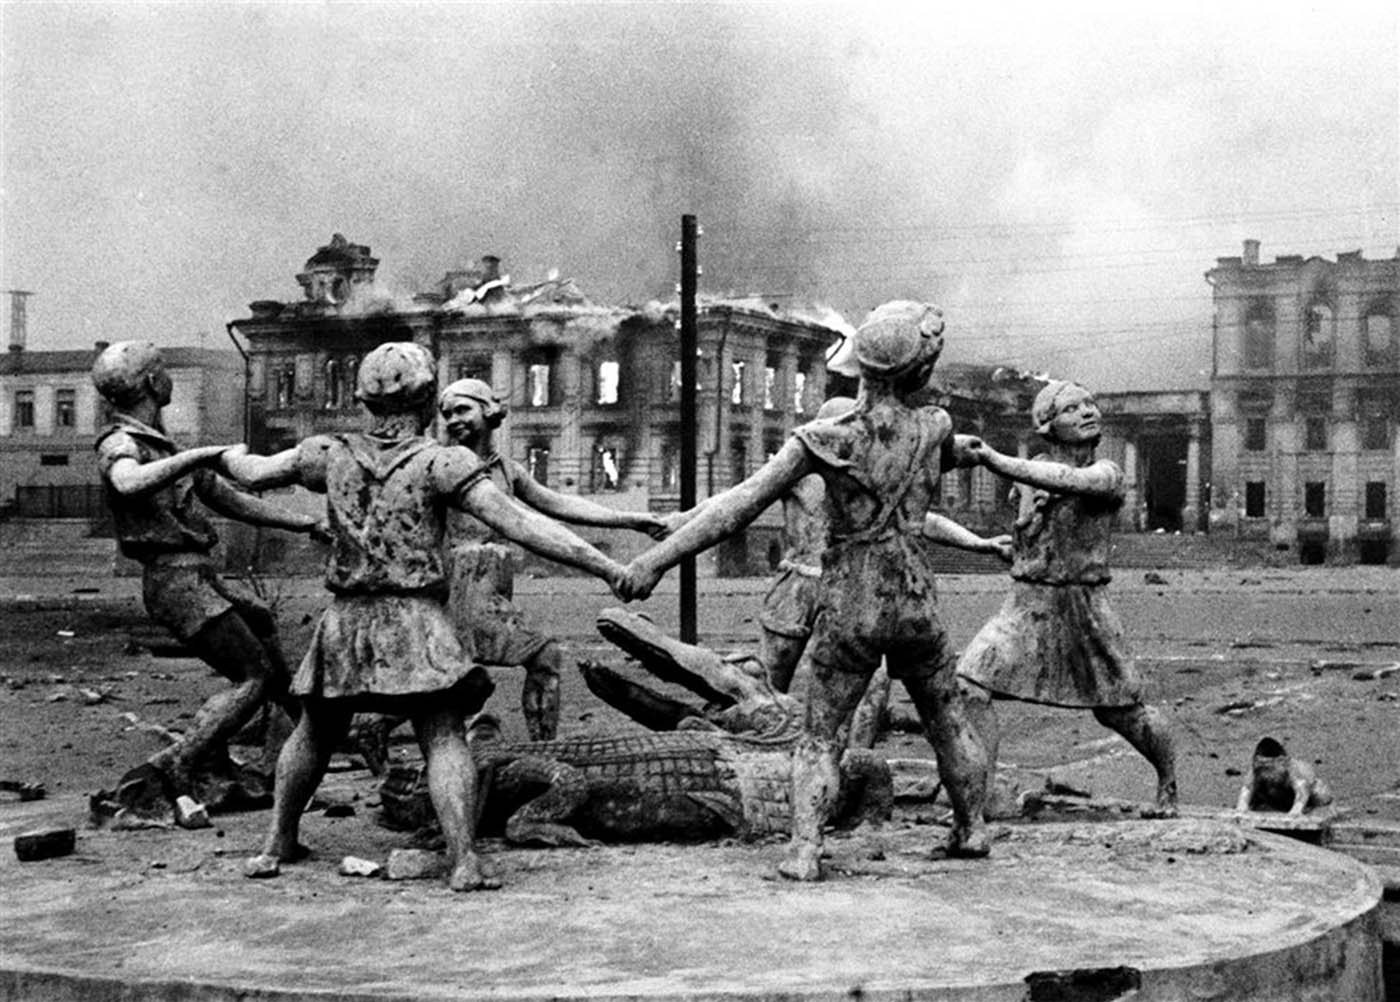 Statue in the center of Stalingrad after Nazi air strikes, 1942